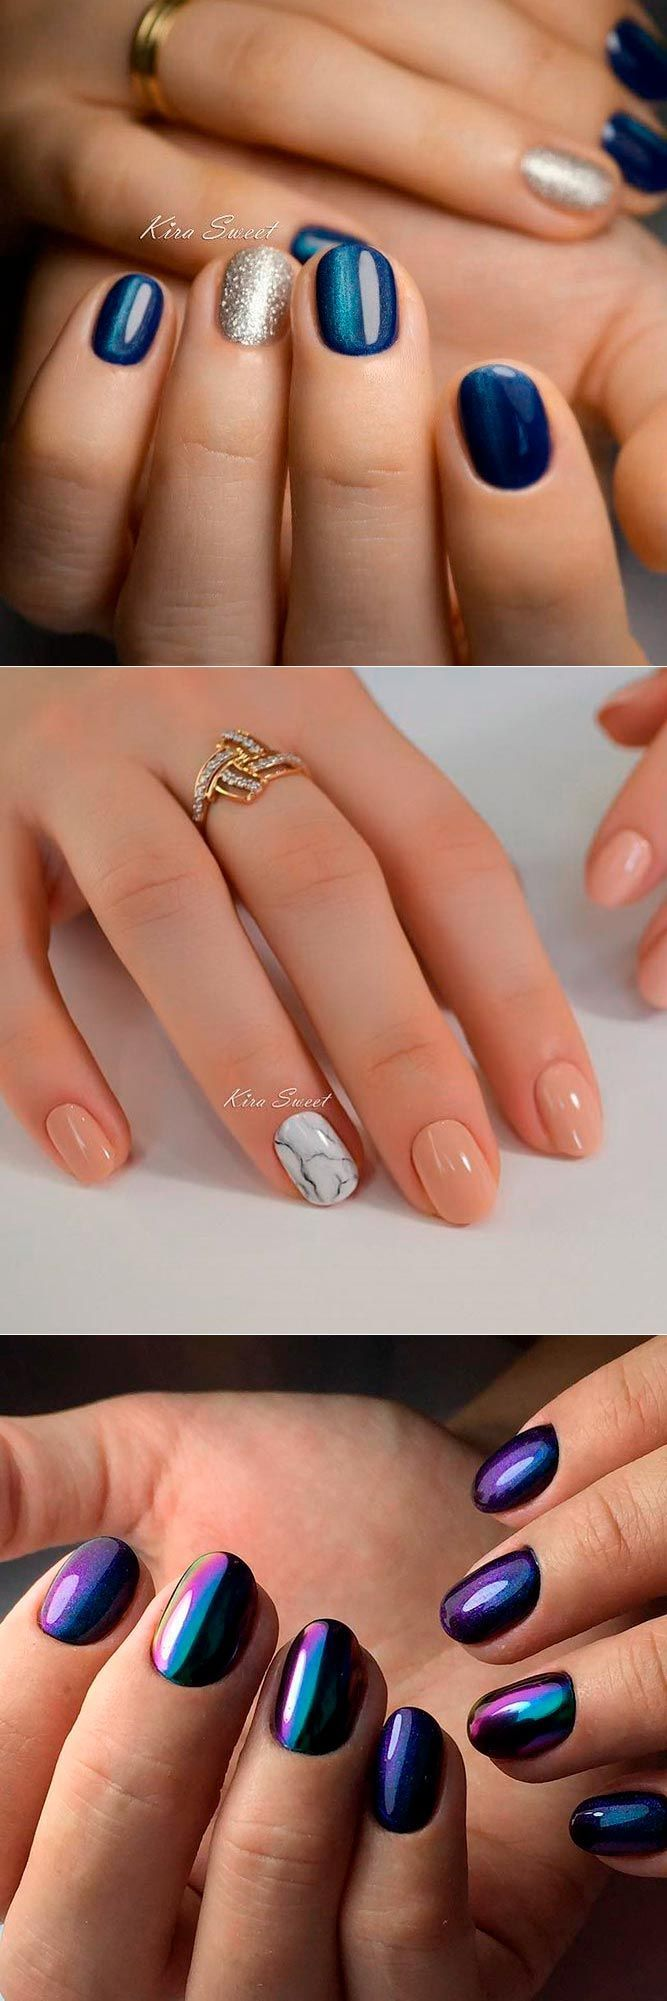 Rounded nails come with lots of advantages, from the simple maintenance to the vast range of designs. Even the pickiest of you will find something here.